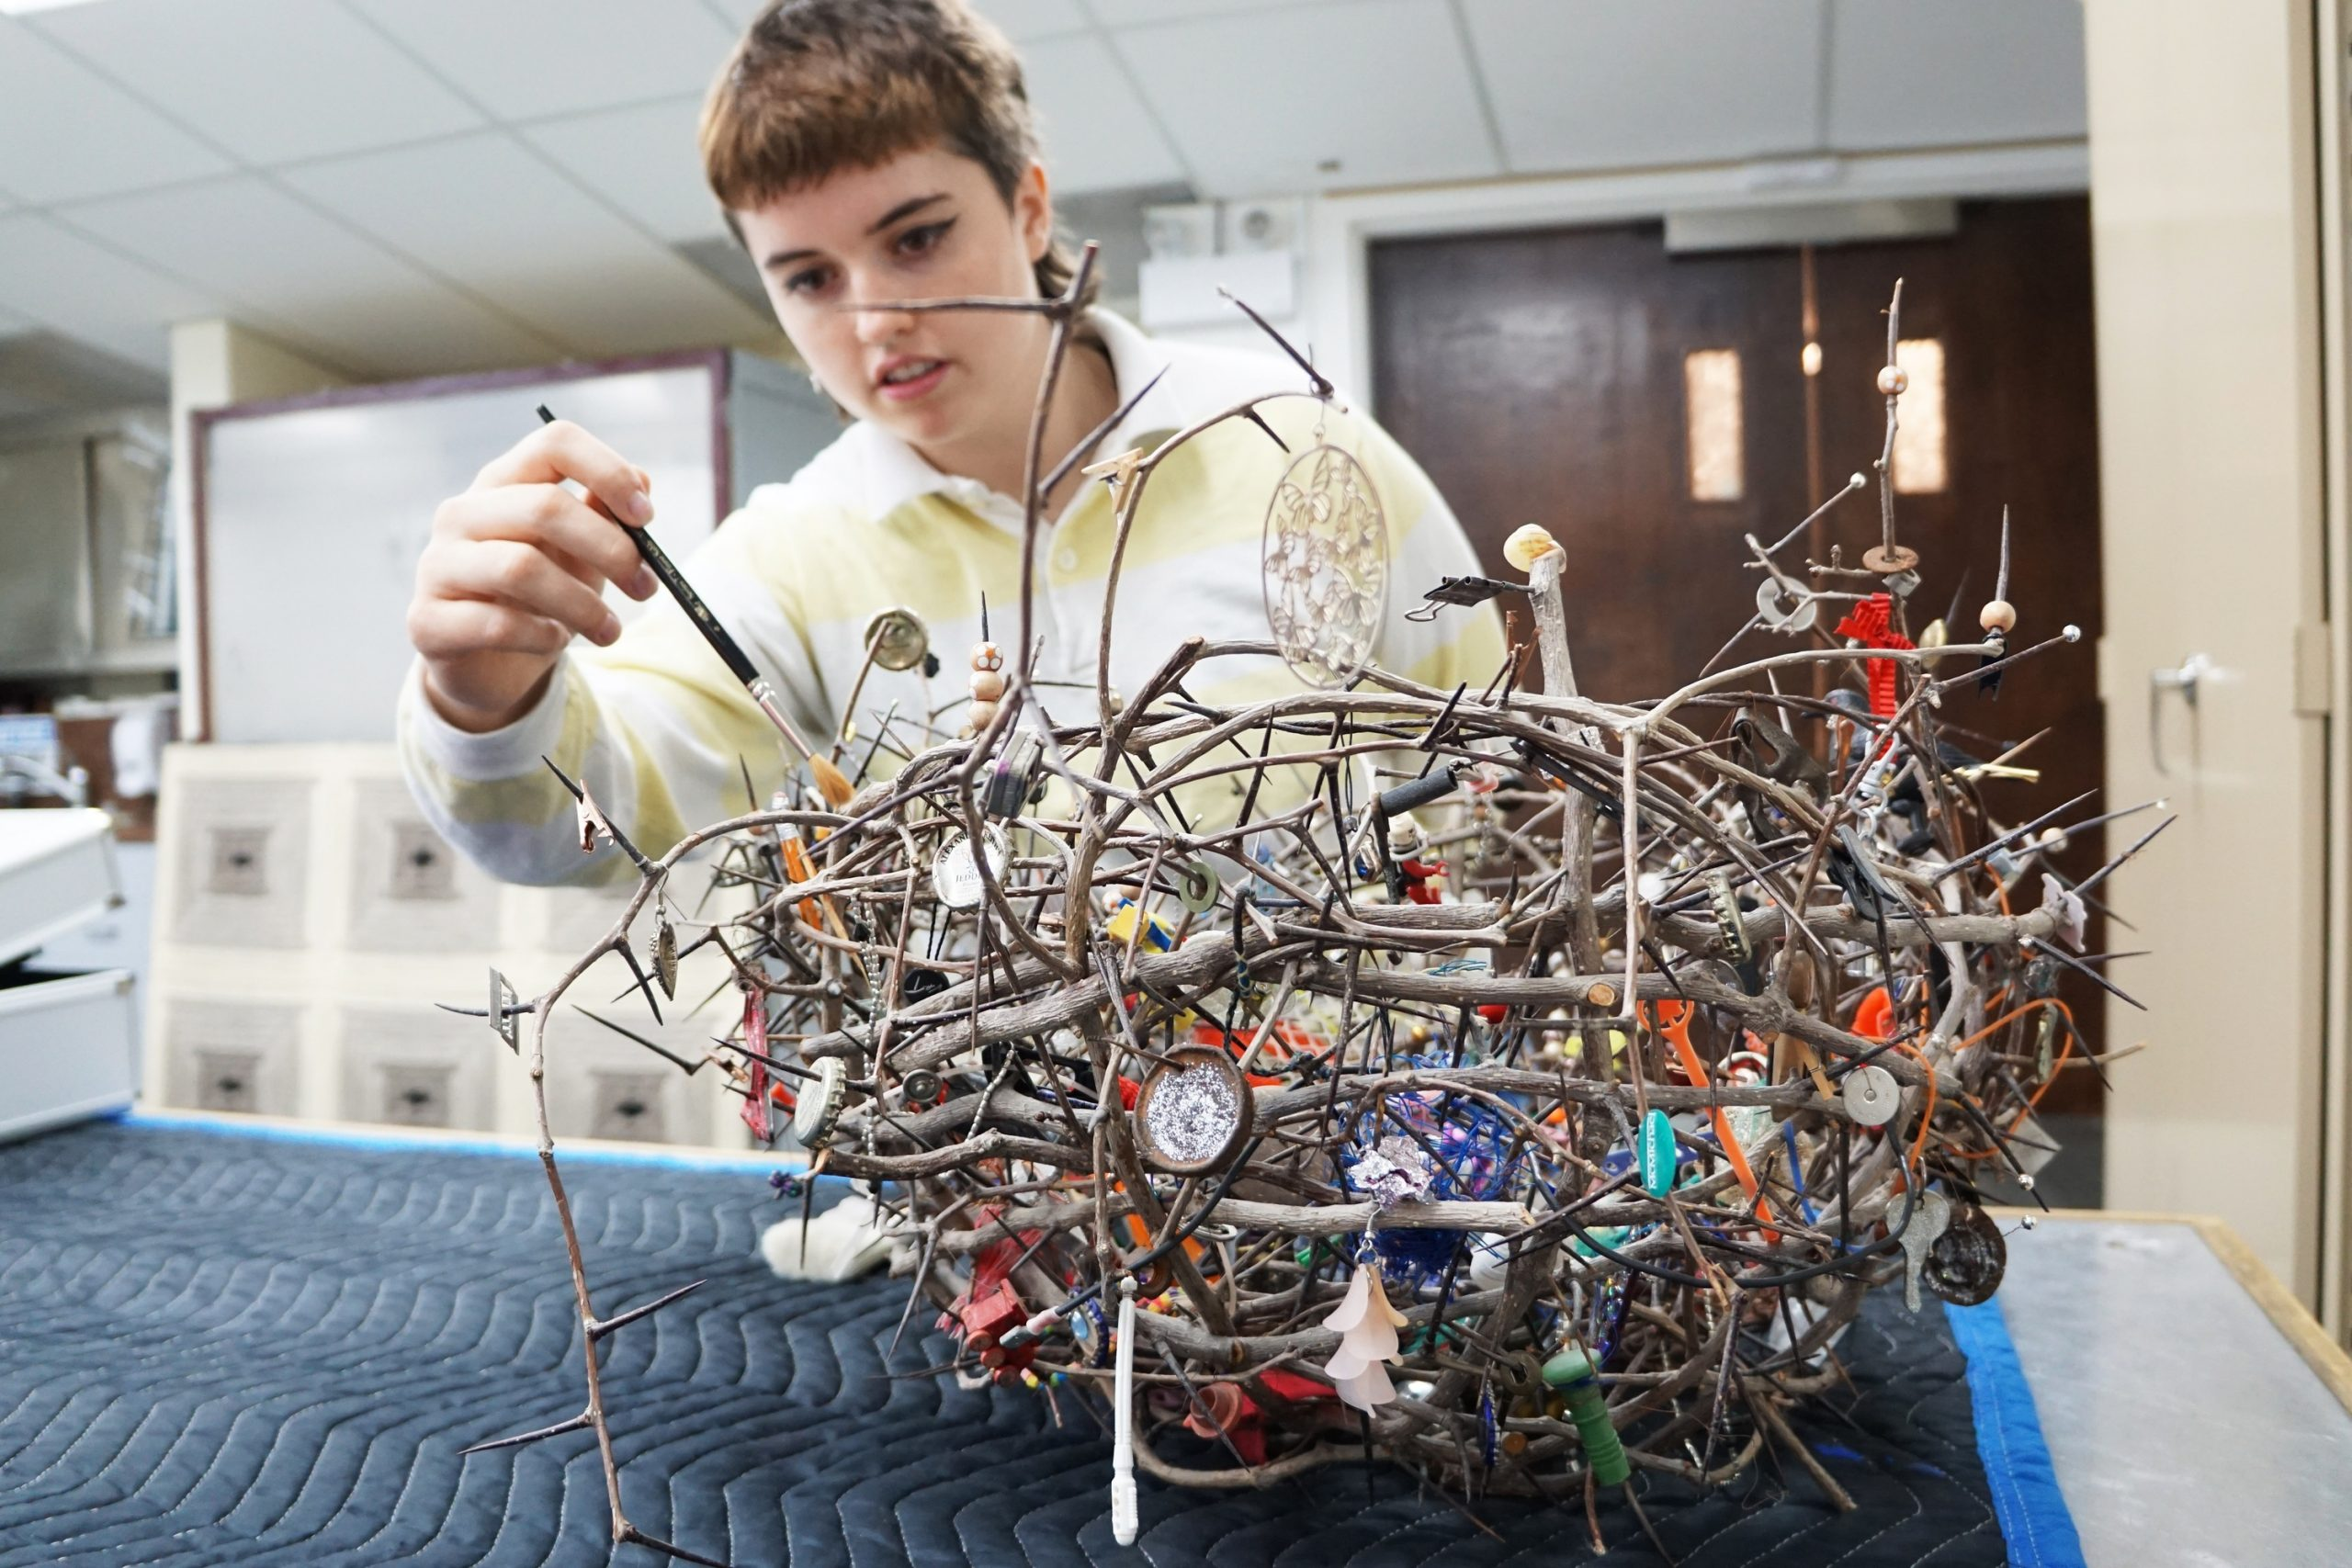 A university student stands over a table cleaning a sculpture using a small brush. The sculpture resembles a bird's nest made of twigs and branches. Ornaments and small objects of various shapes, colours, and sizes hang from its branches. The sculpture rests on the table atop a piece of quilted fabric in an art conservation lab.